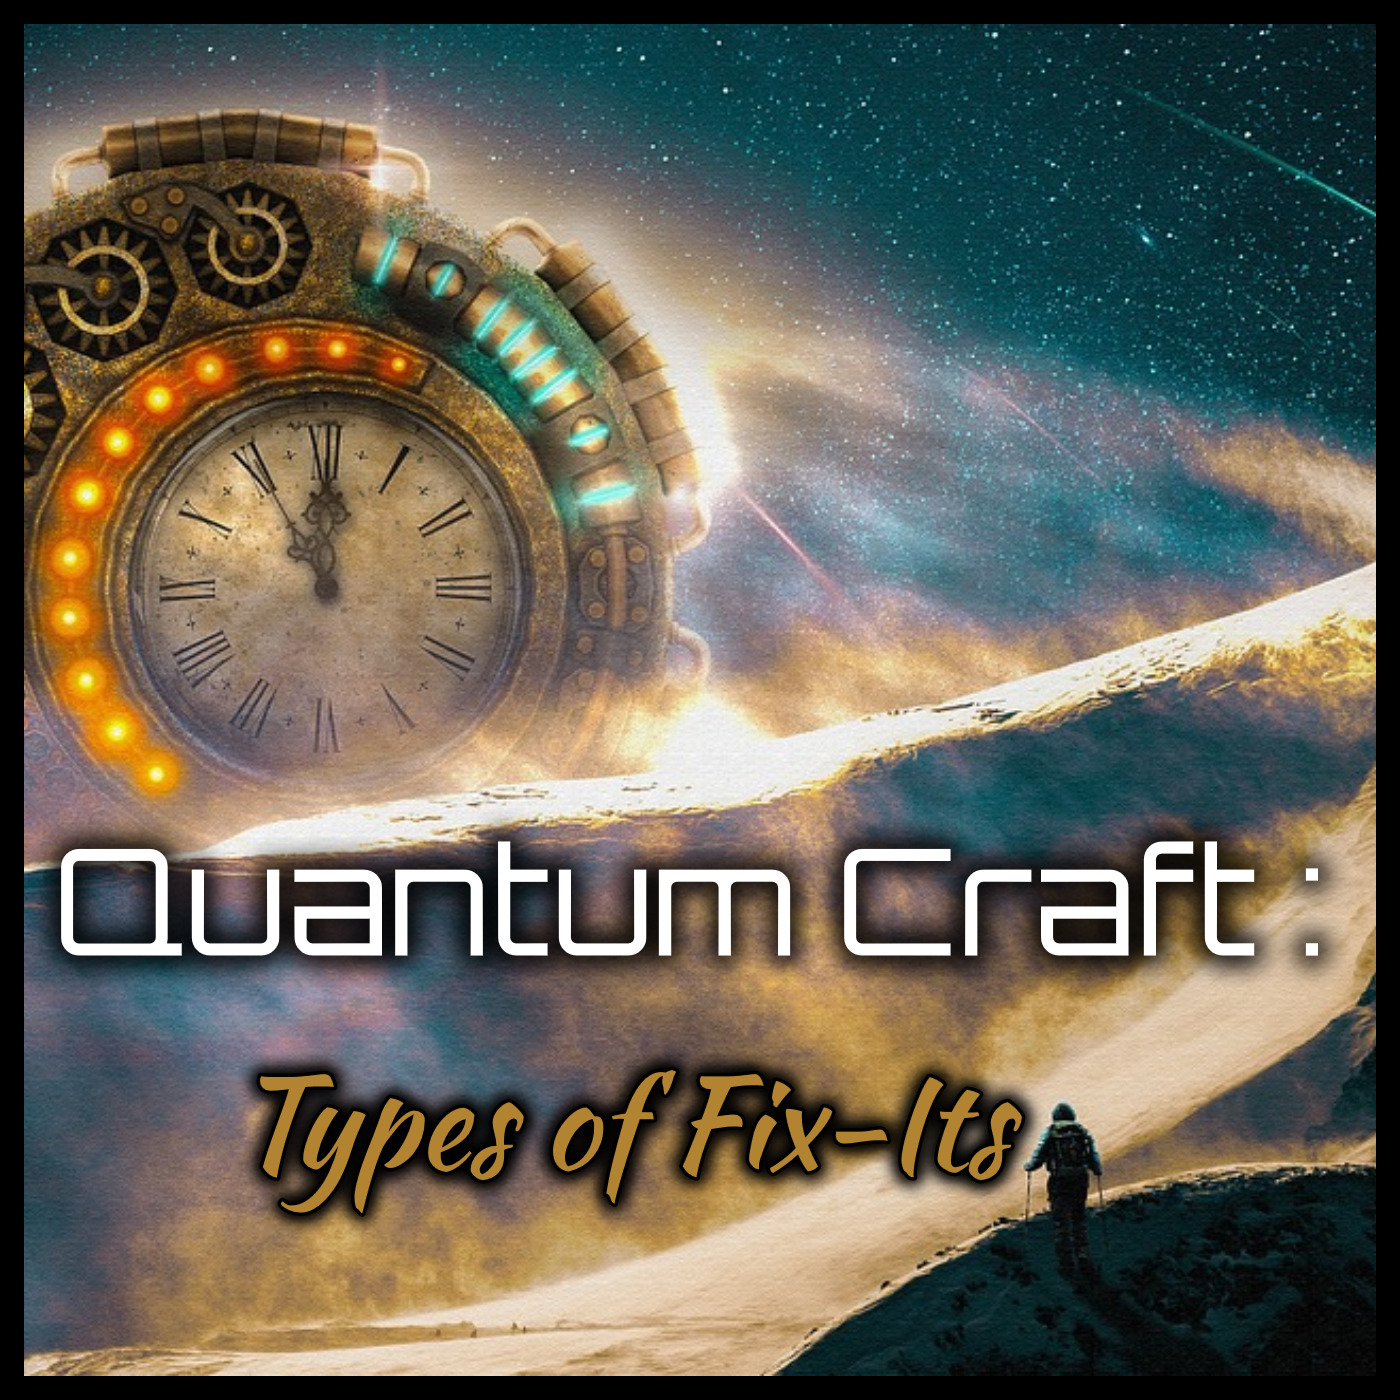 Quantum Craft: Types of Fix-Its